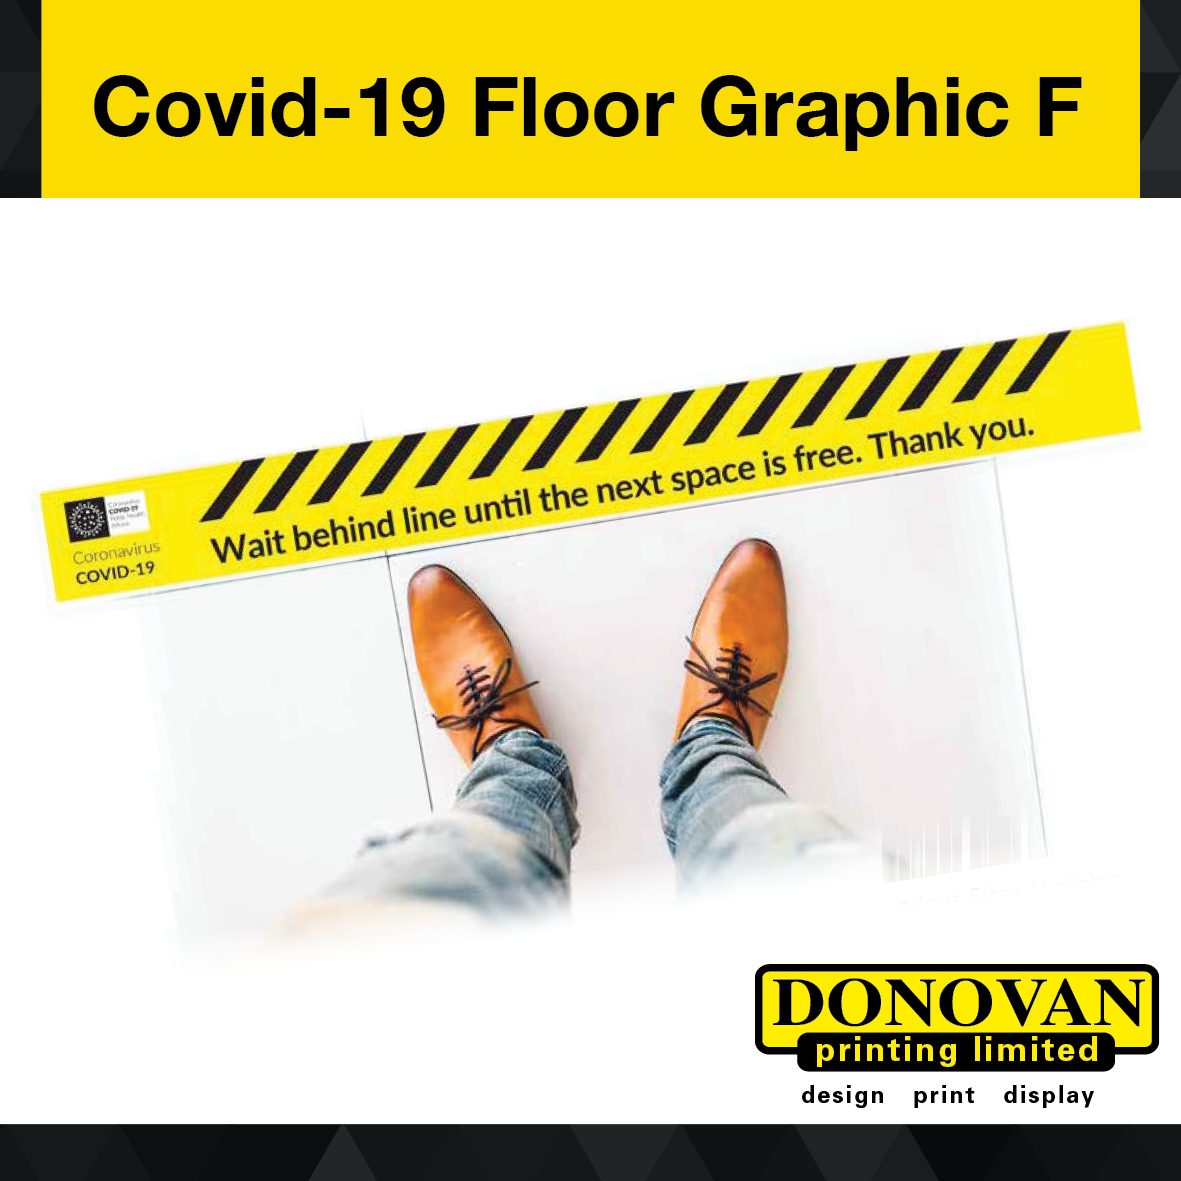 Covid Floor Graphic F Image